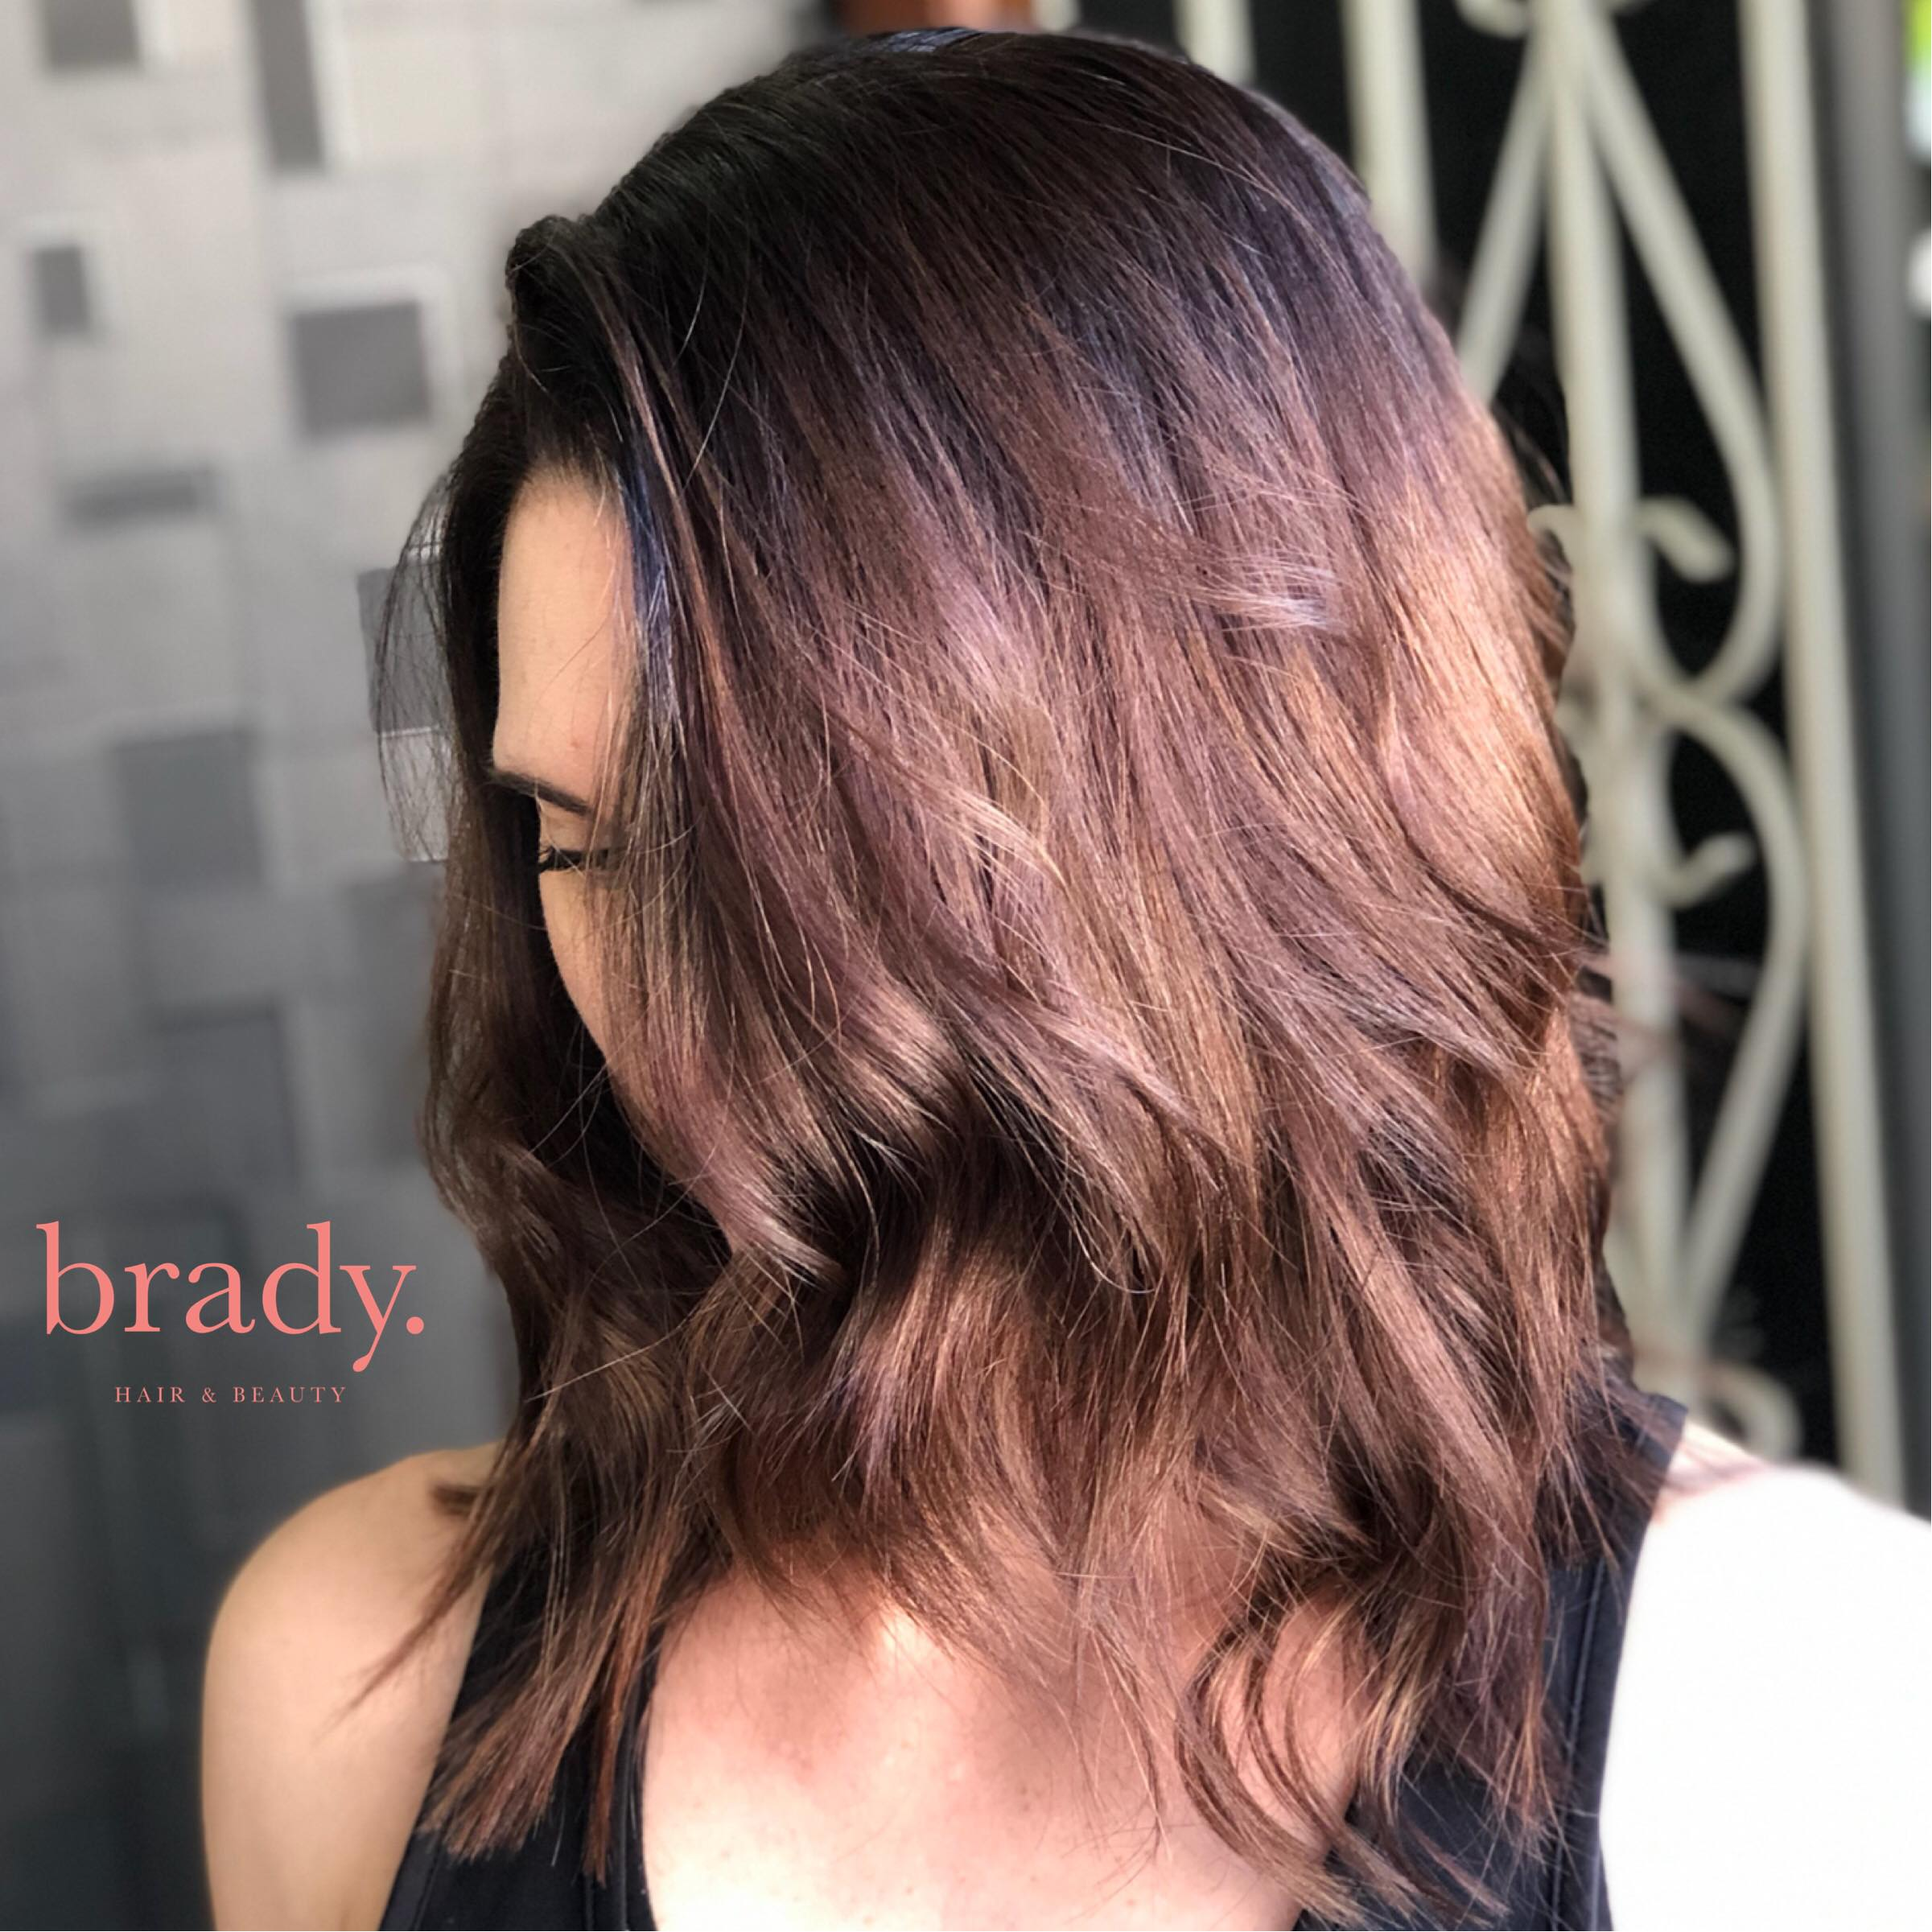 Photo of woman with medium-length wavy brunette hair, styled by Brady. Hair & Beauty, Toowong, Brisbane.